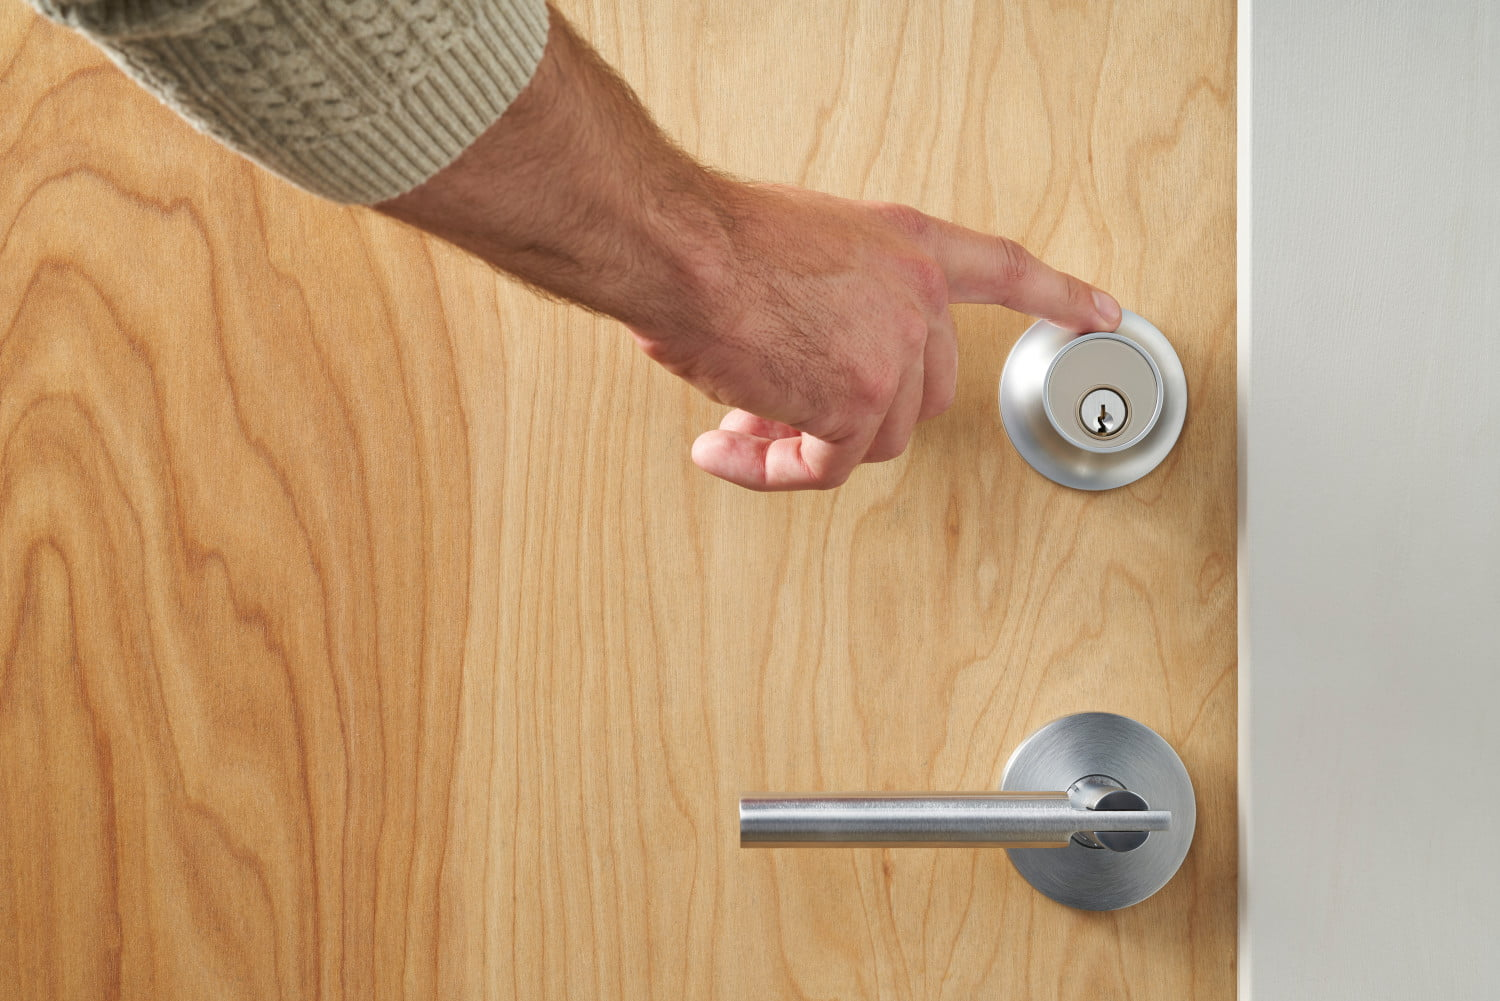 Level Touch Smart Lock Conveniently Unlocks With a Tap | Digital Trends